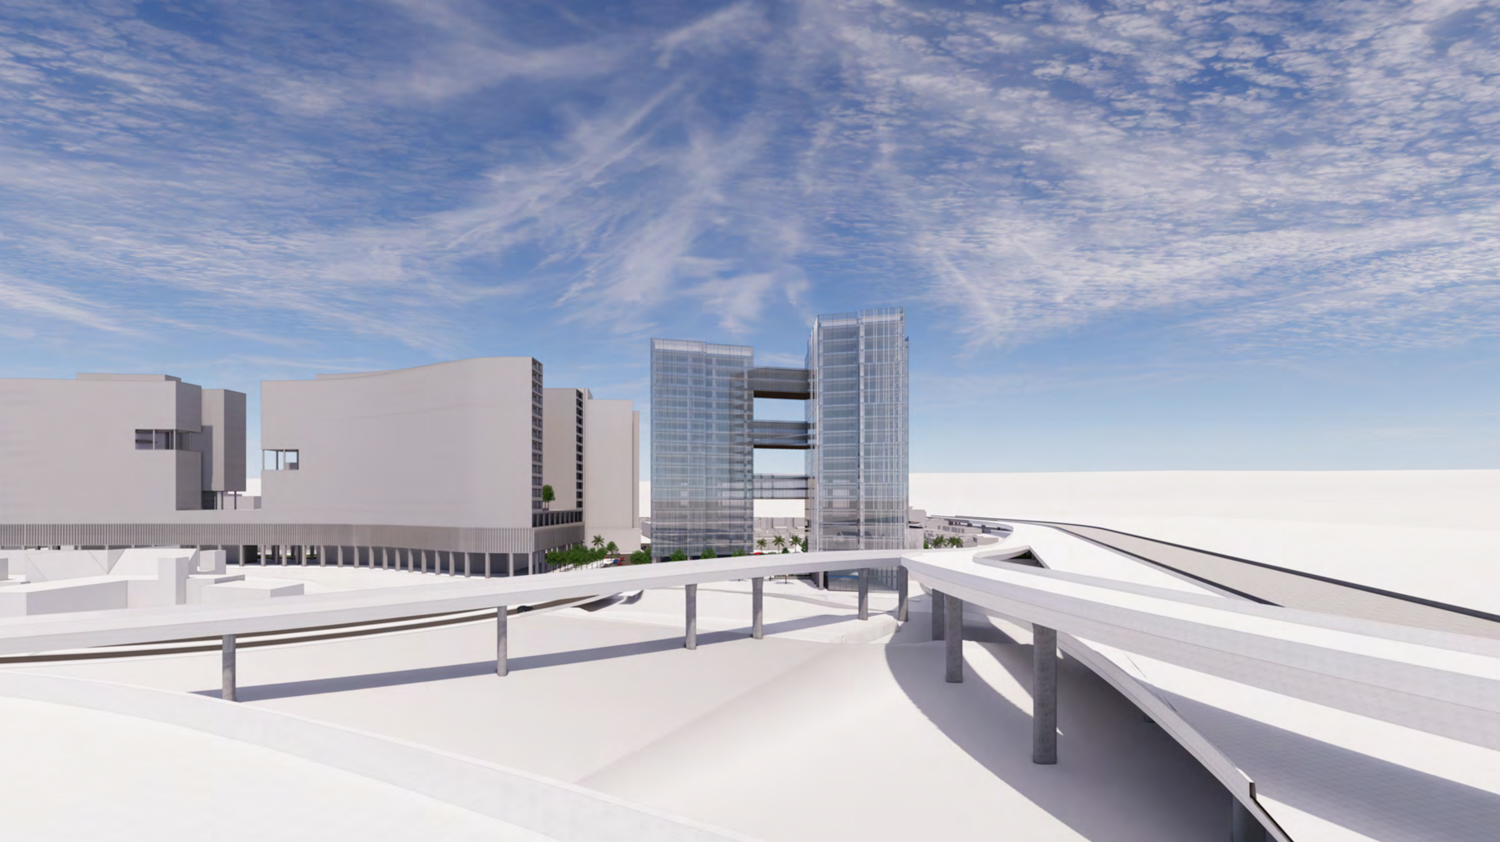 280 Woz Way with freeways massed, rendering by C2K Architecture